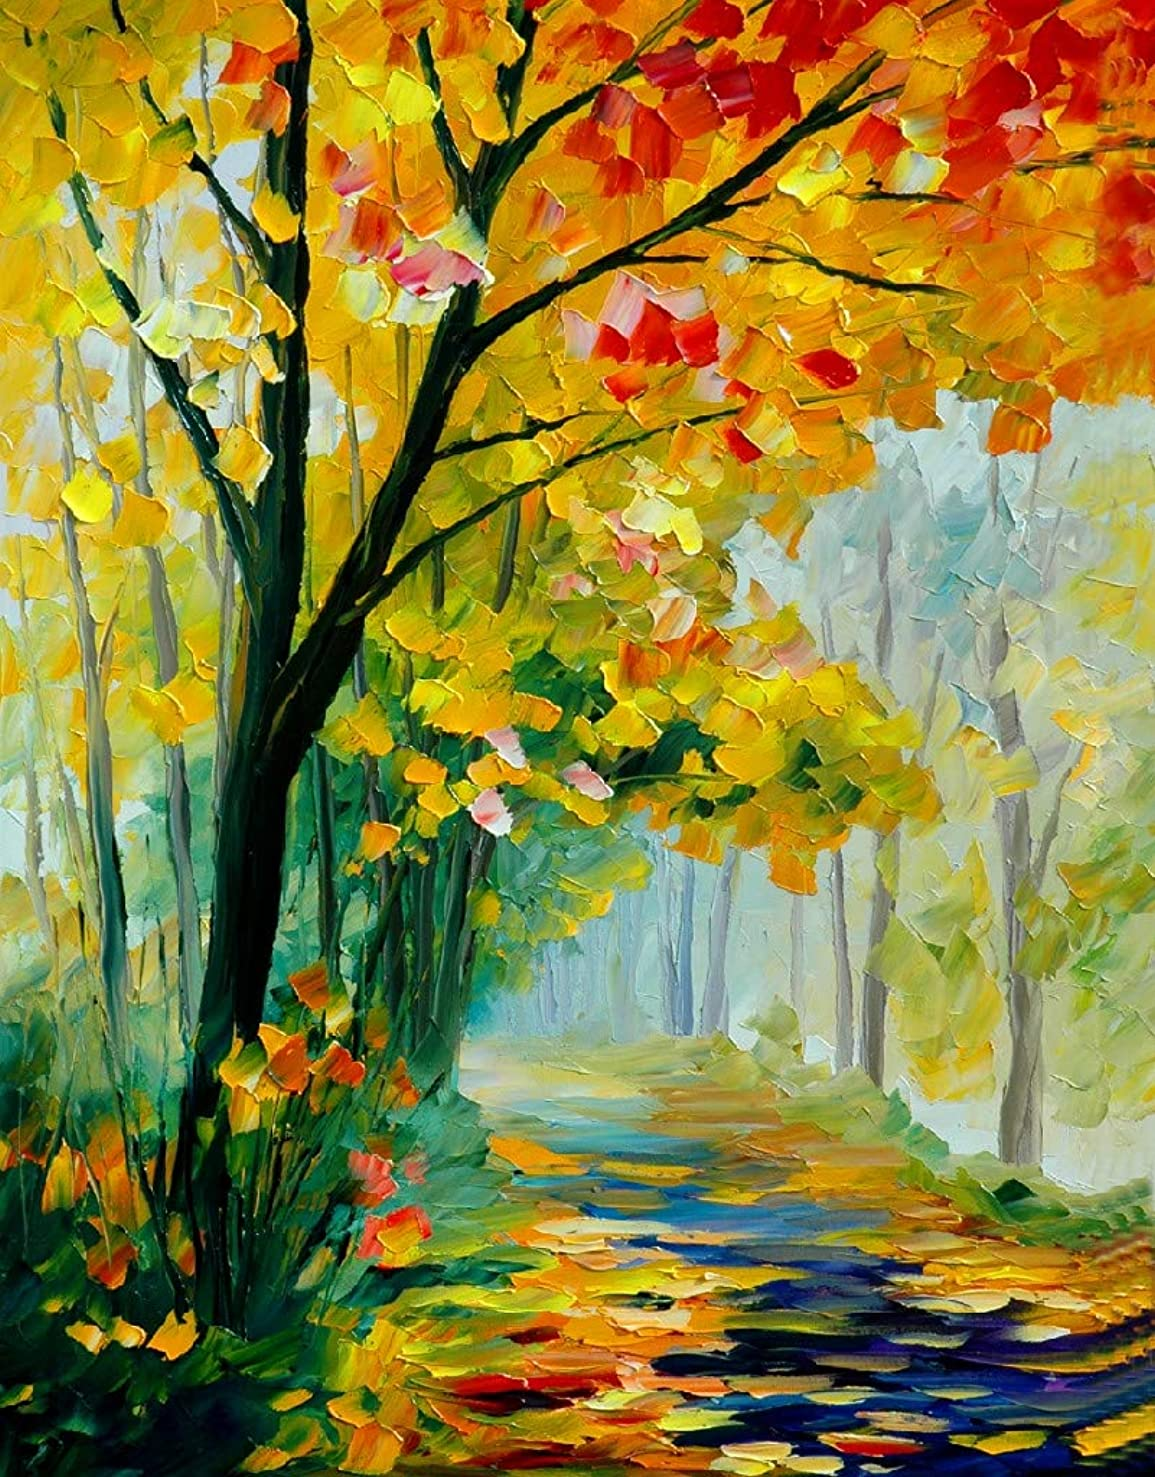 [ Wooden Framed ] DIY Oil Painting Paint by Number Kit for Adults Kids Romantic Love Autumn (11) 16x20 Inch